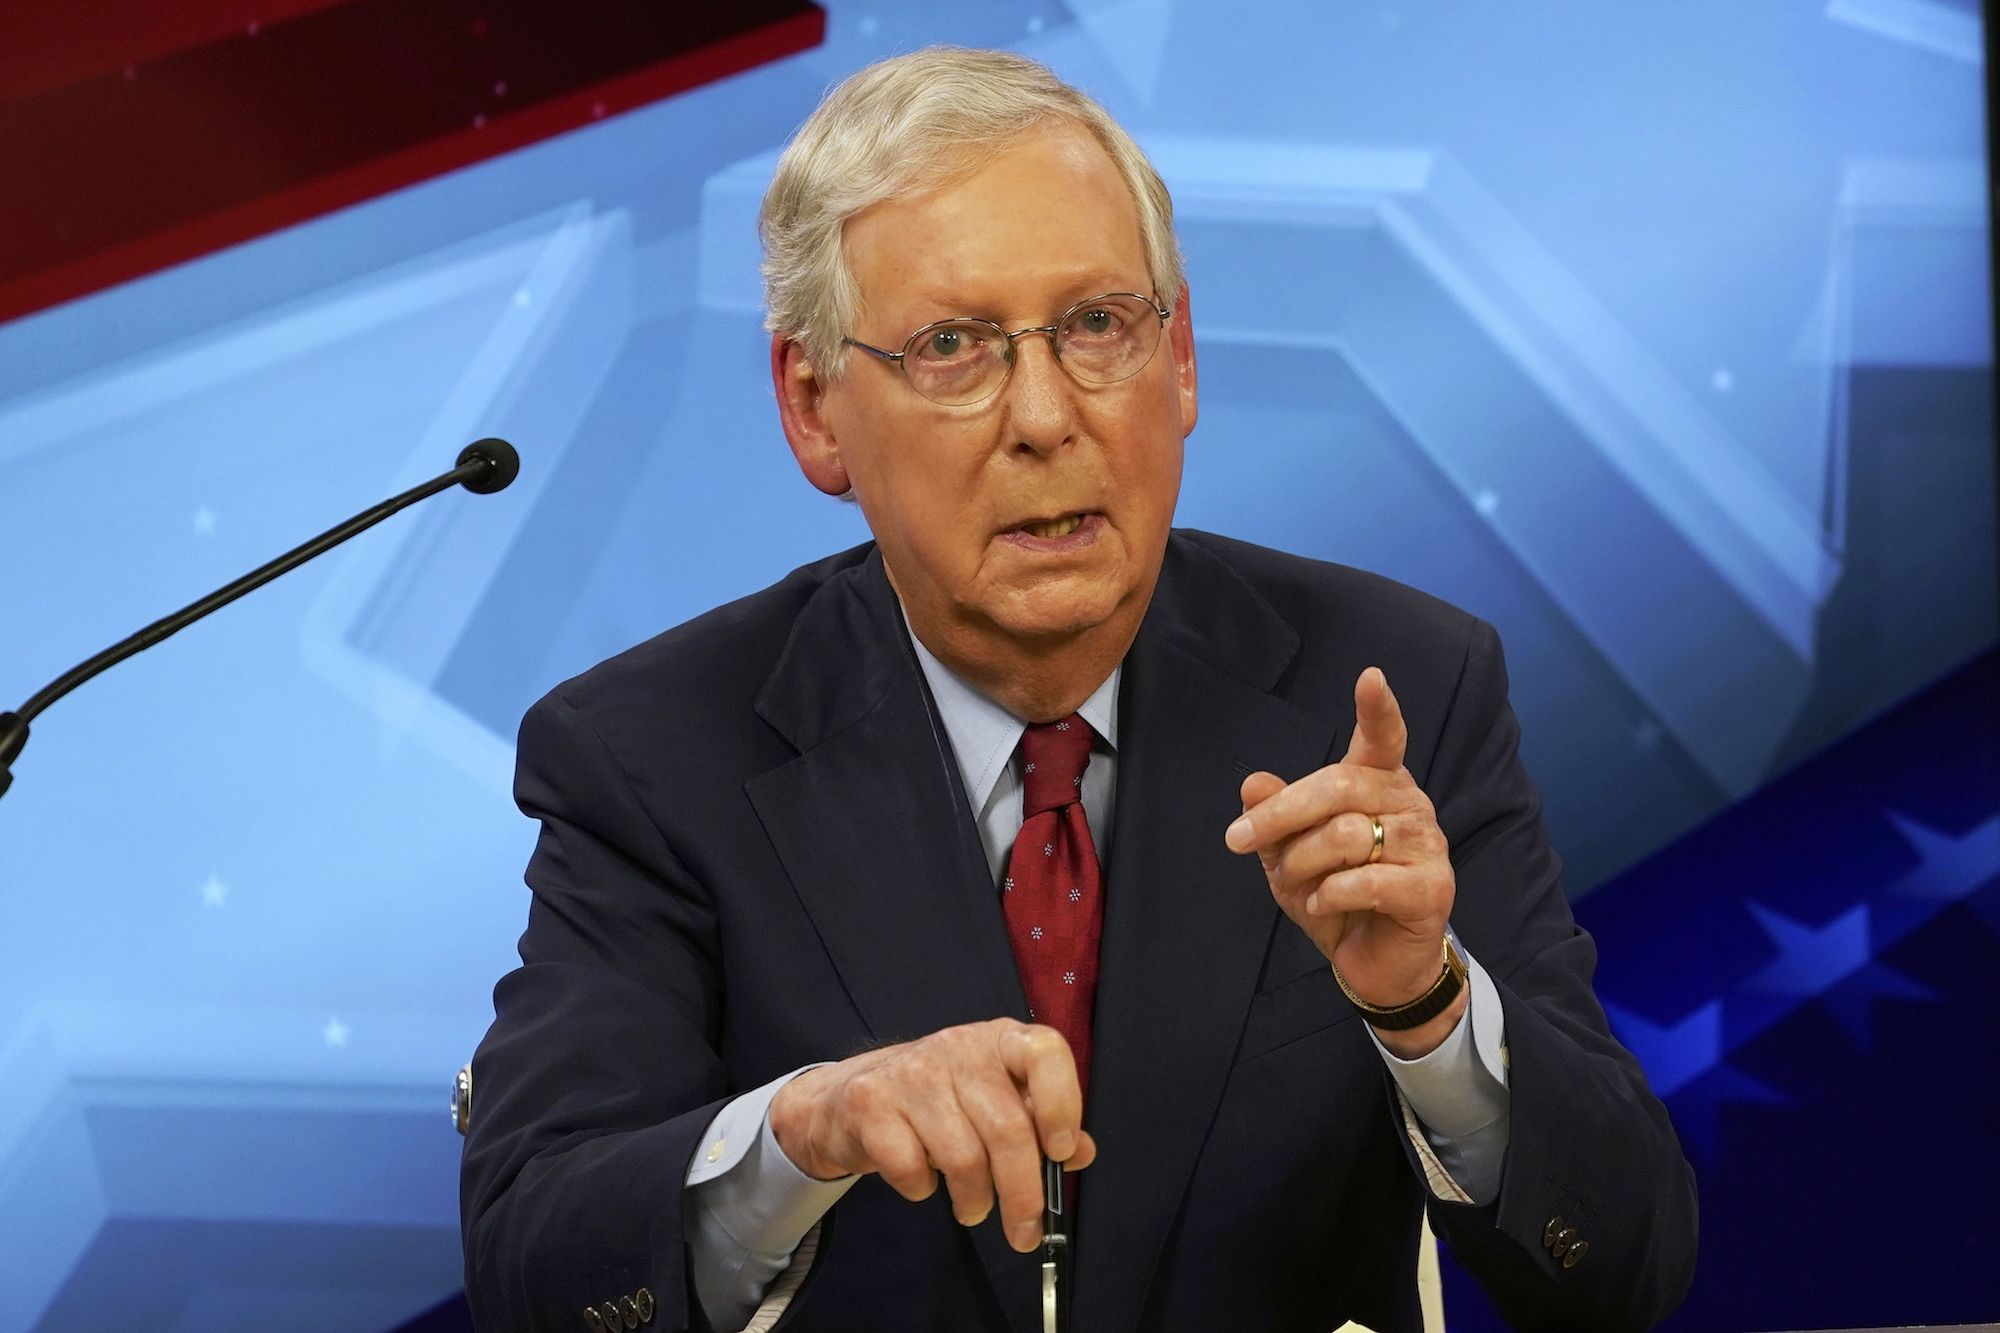 Mitch McConnell Corrupt To The Core cover image